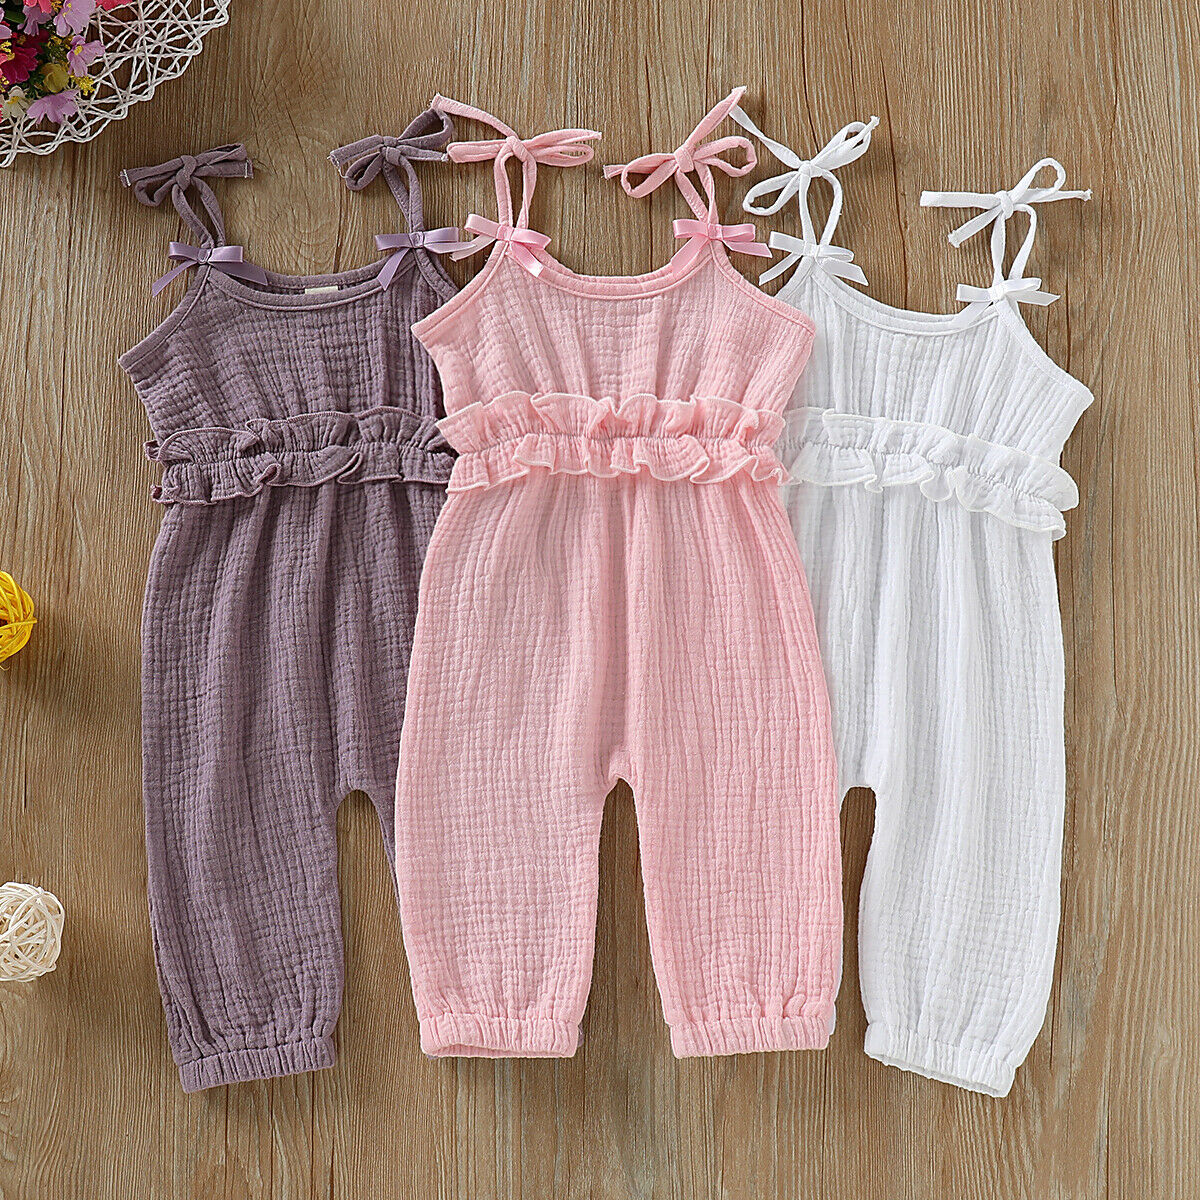 Baby Girl Jumpsuit Sleeveless Strap Solid Romper Ruffled Bowknot High Waist Trousers Jumpsuit Sunsuit Outfits New